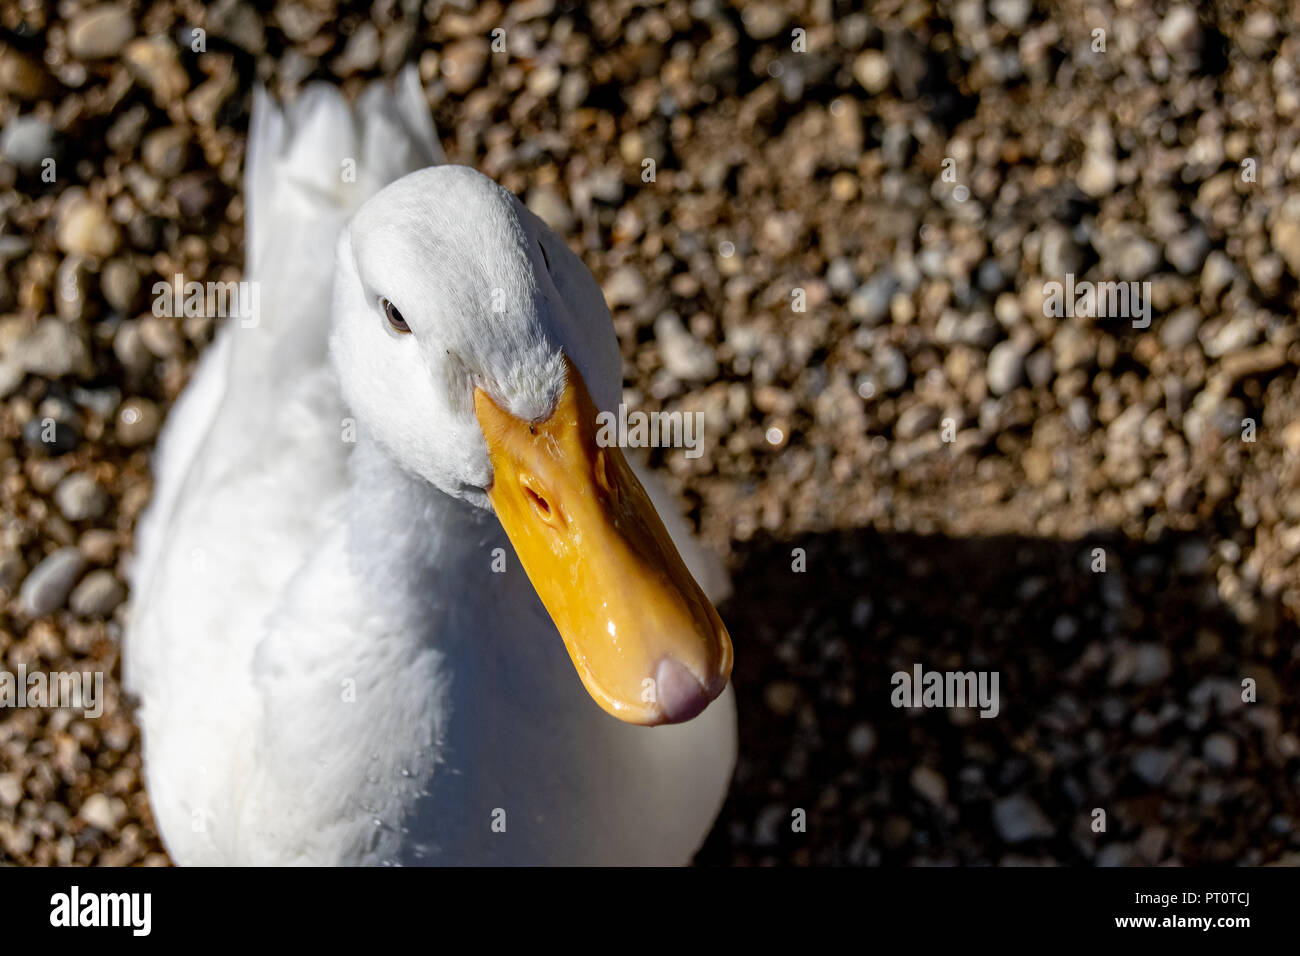 High angle portrait of an American Pekin Duck (Anas platyrhynchos domesticus) - Stock Image